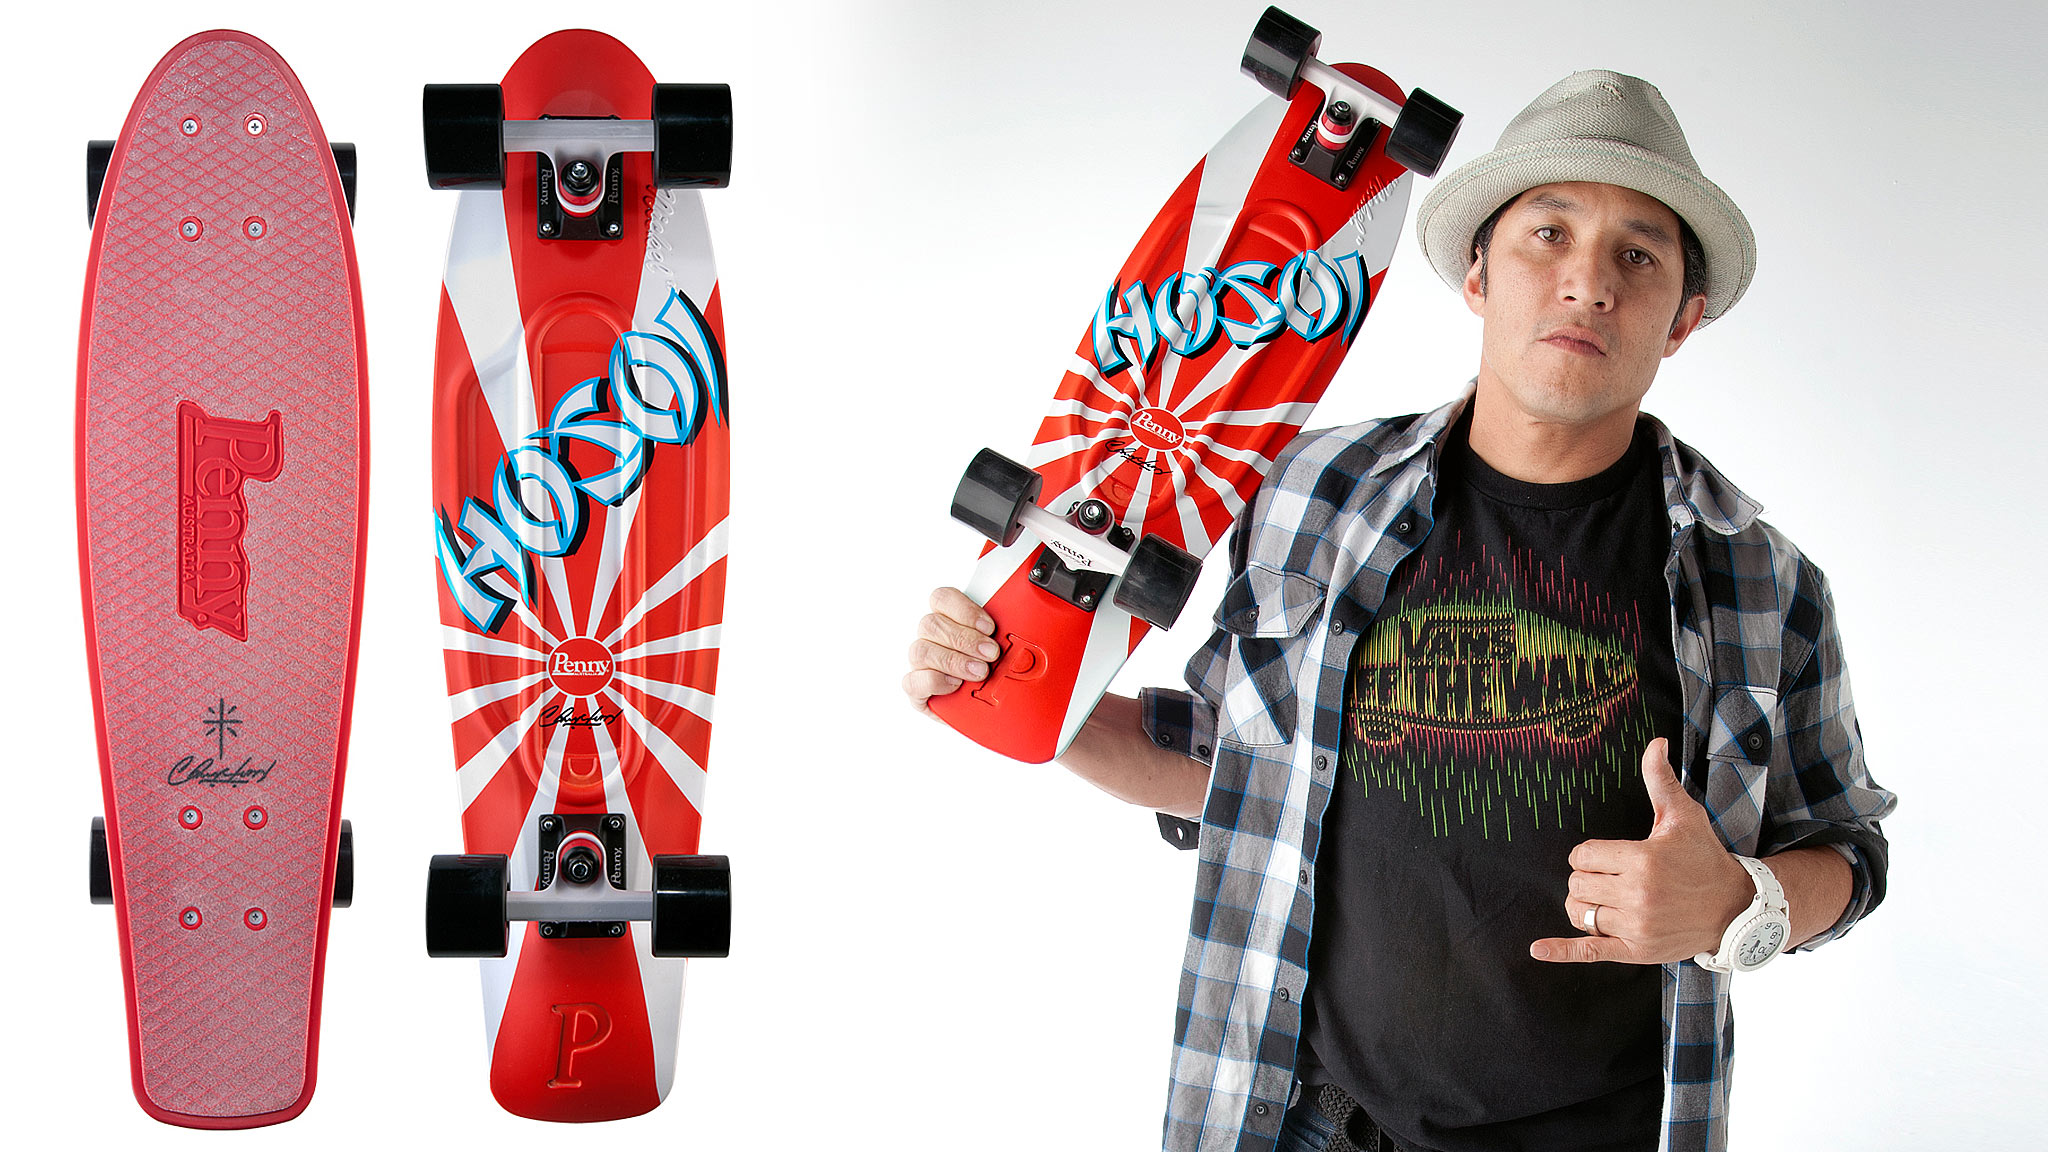 The Hosoi Penny board will look good under your feet or on your wall.